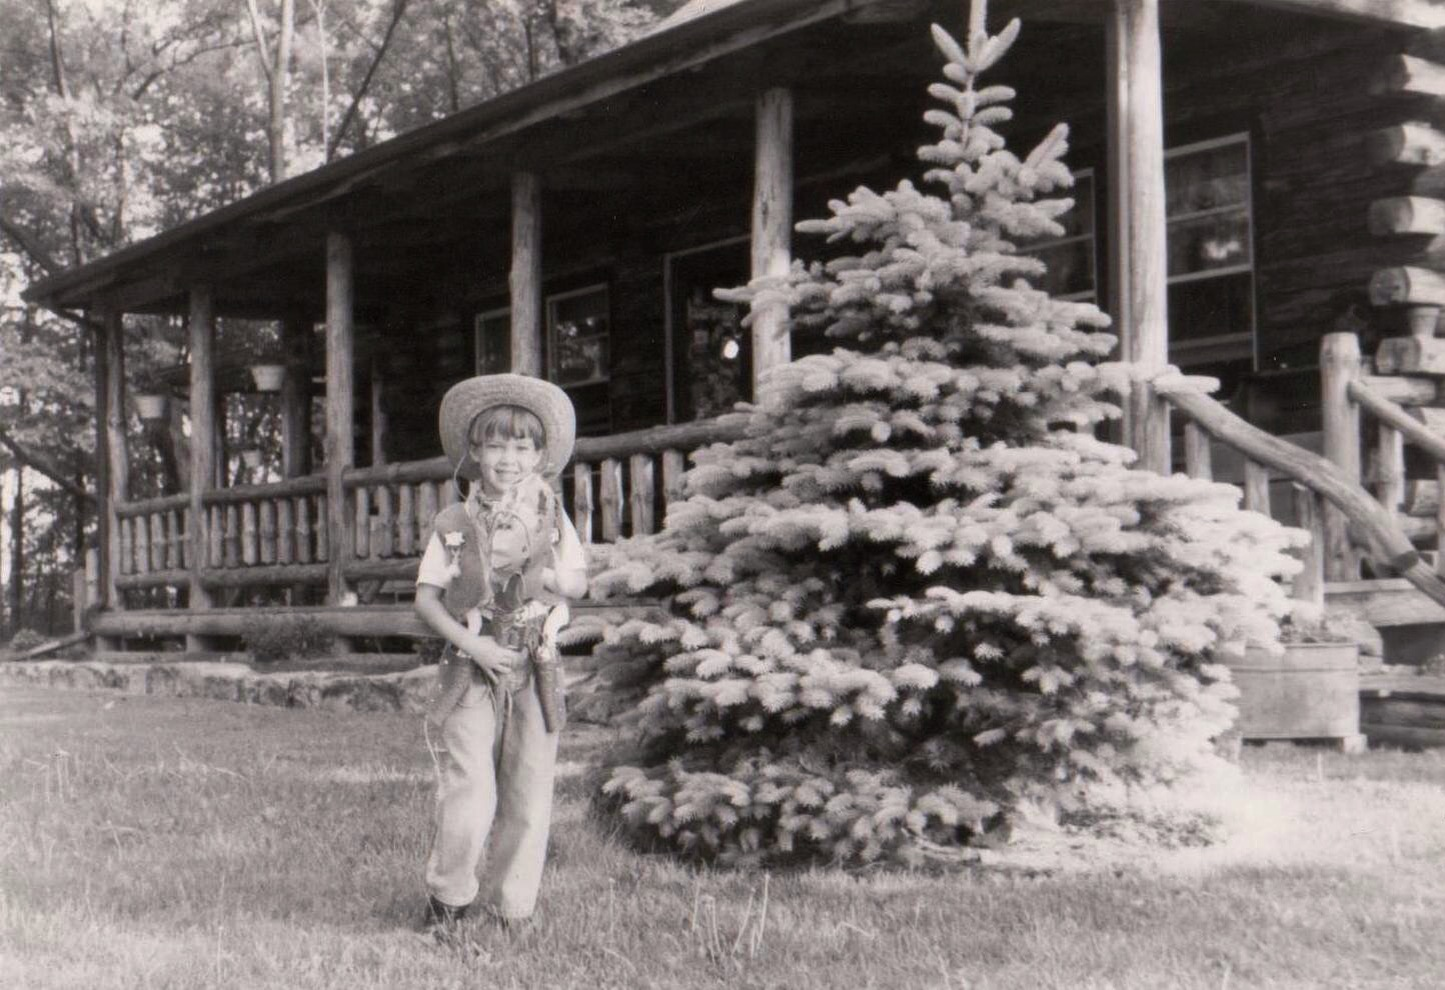 My early cowgirl days. Little did my parents know this was actually a dream I would pursue.